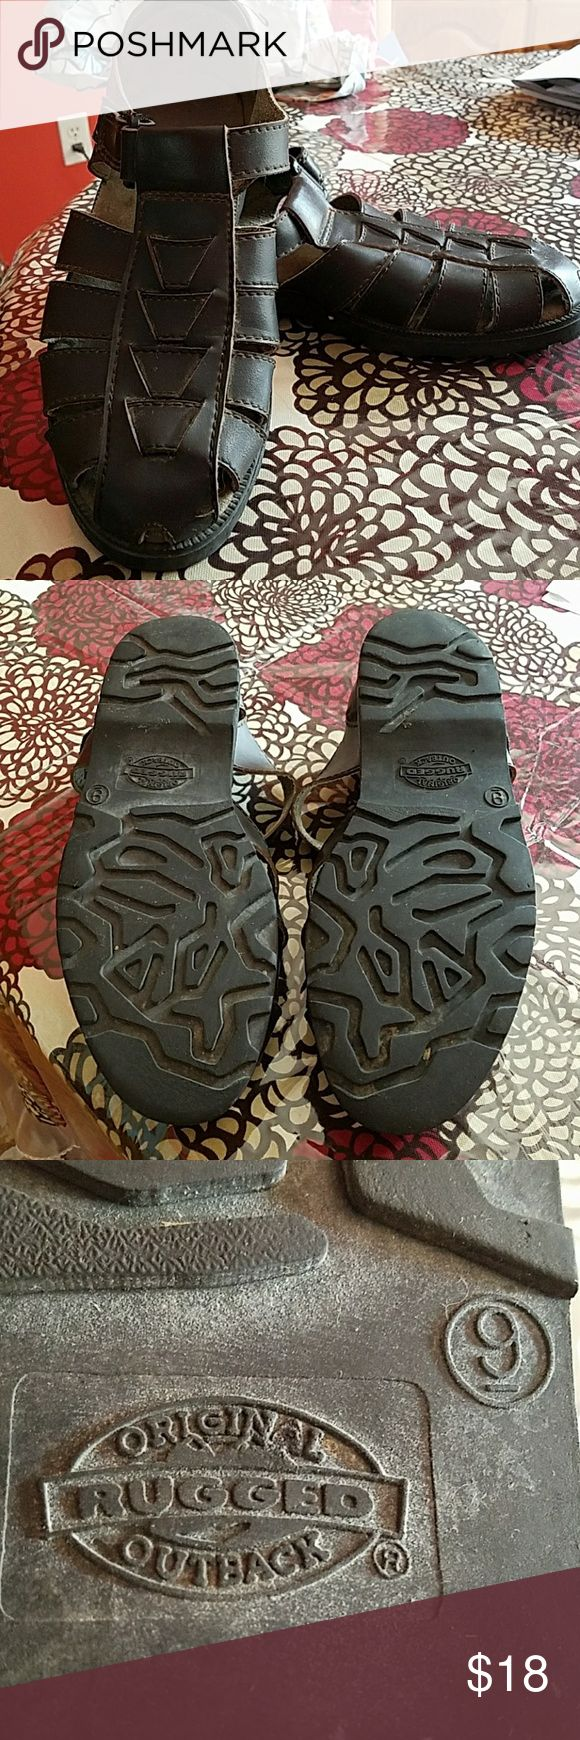 Men's Original Rugged Outback sandals Dark Brown with Velcro fasteners - minor scuff on one shoe. Original Rugged Outback Shoes Sandals & Flip-Flops